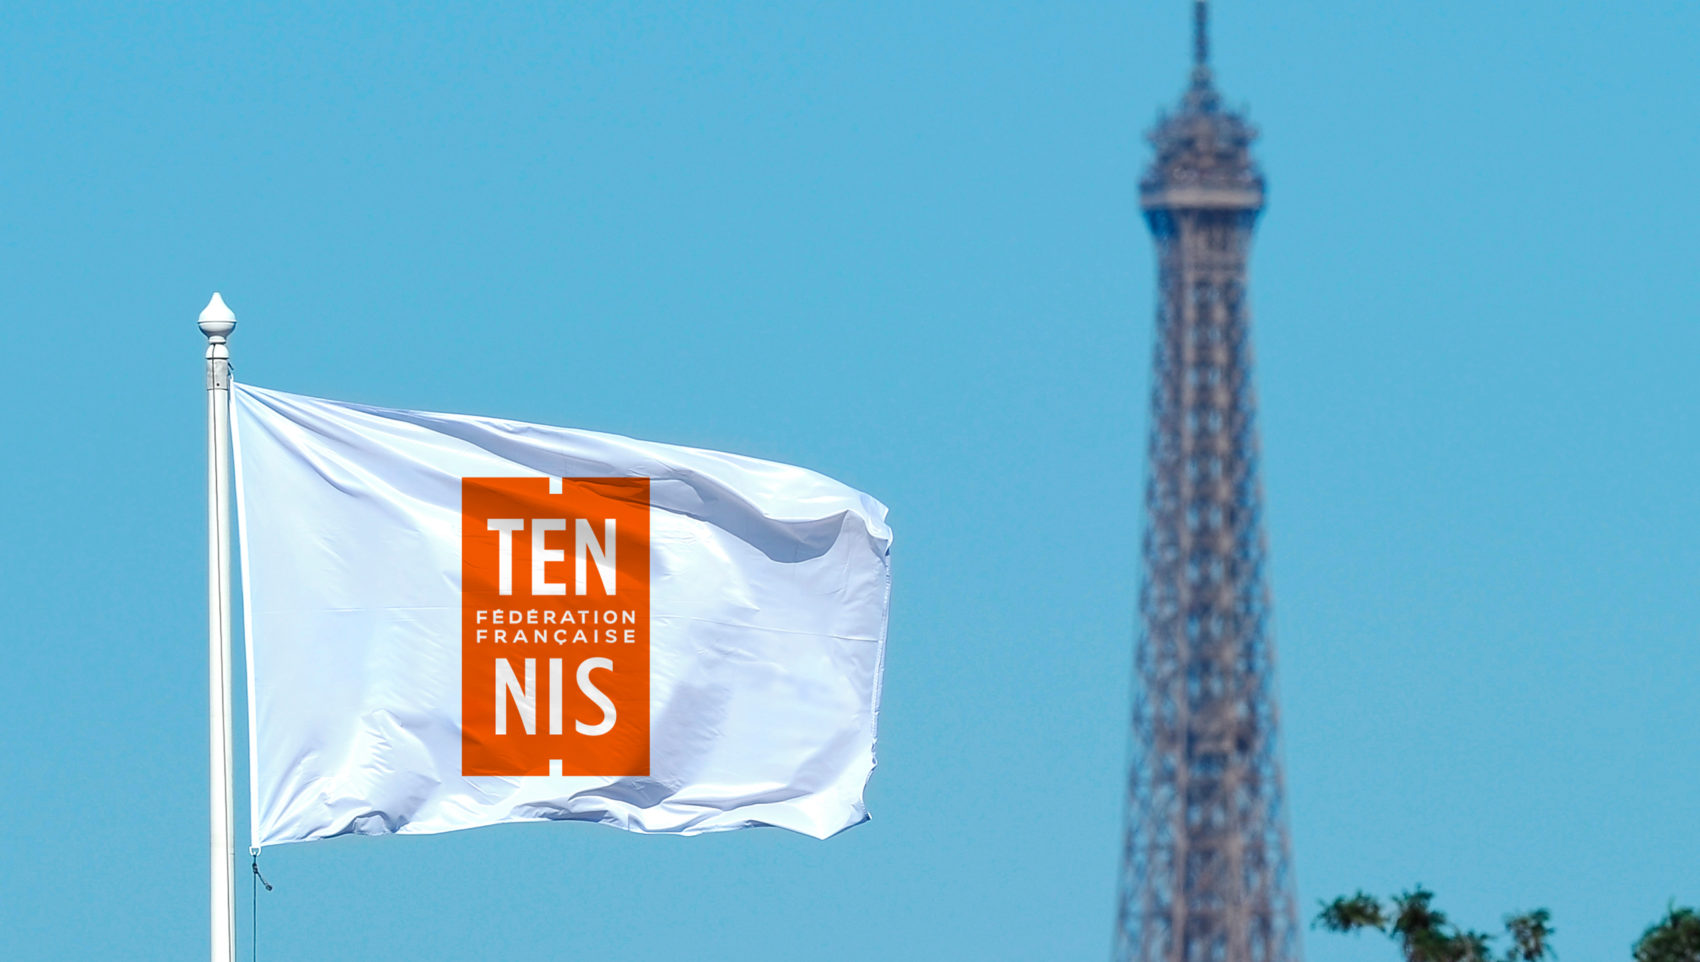 Projet_project_realisation_FFT_federation_francaise_french_tennis